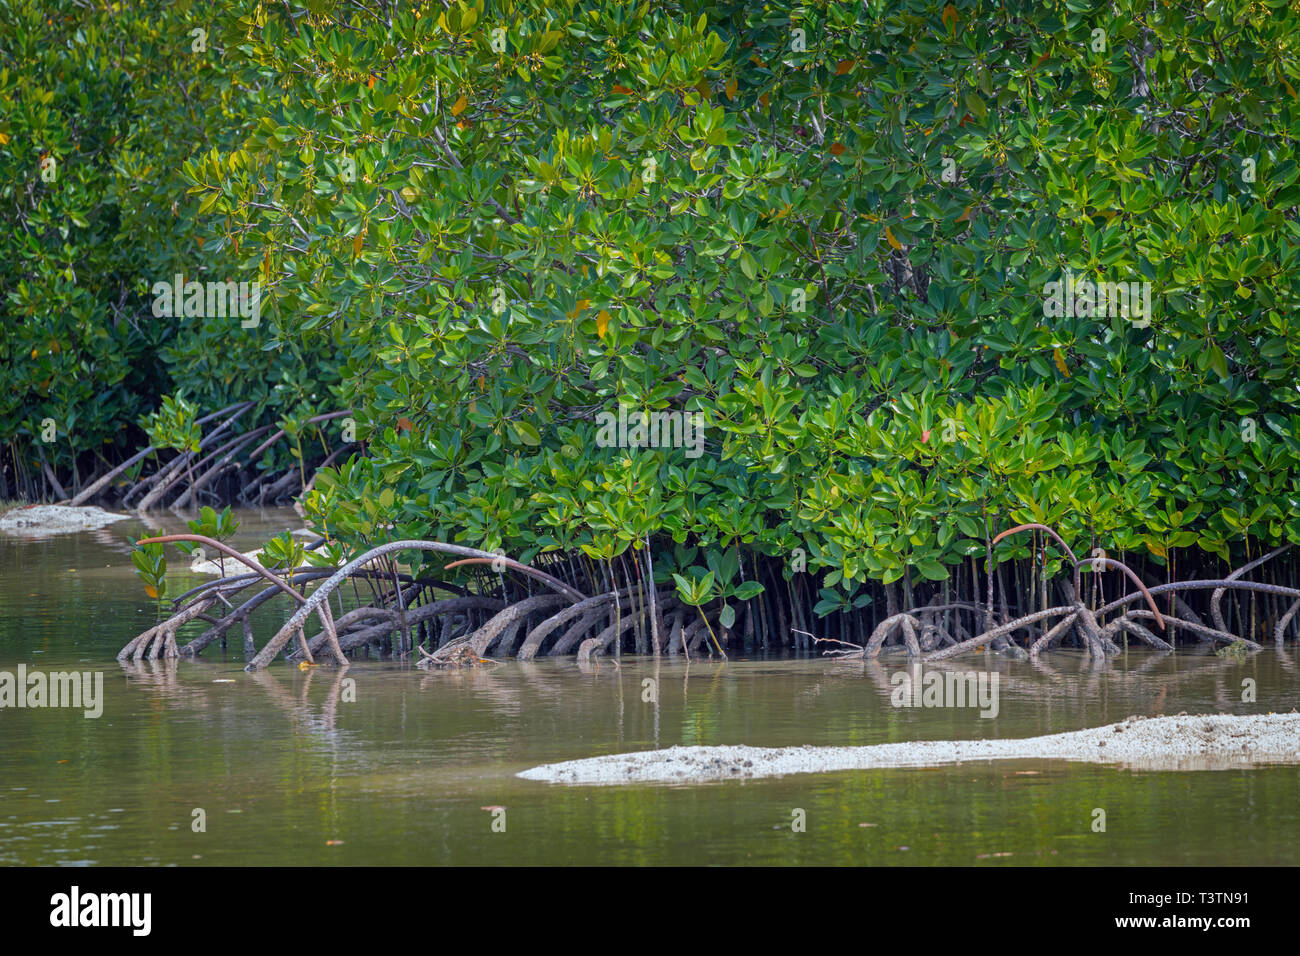 The Pointe D'Esny Wetland near Mahebourg, Mauritius, Mascarene Islands.  The wetlands have been declared a Ramsar Site of International Importance. - Stock Image